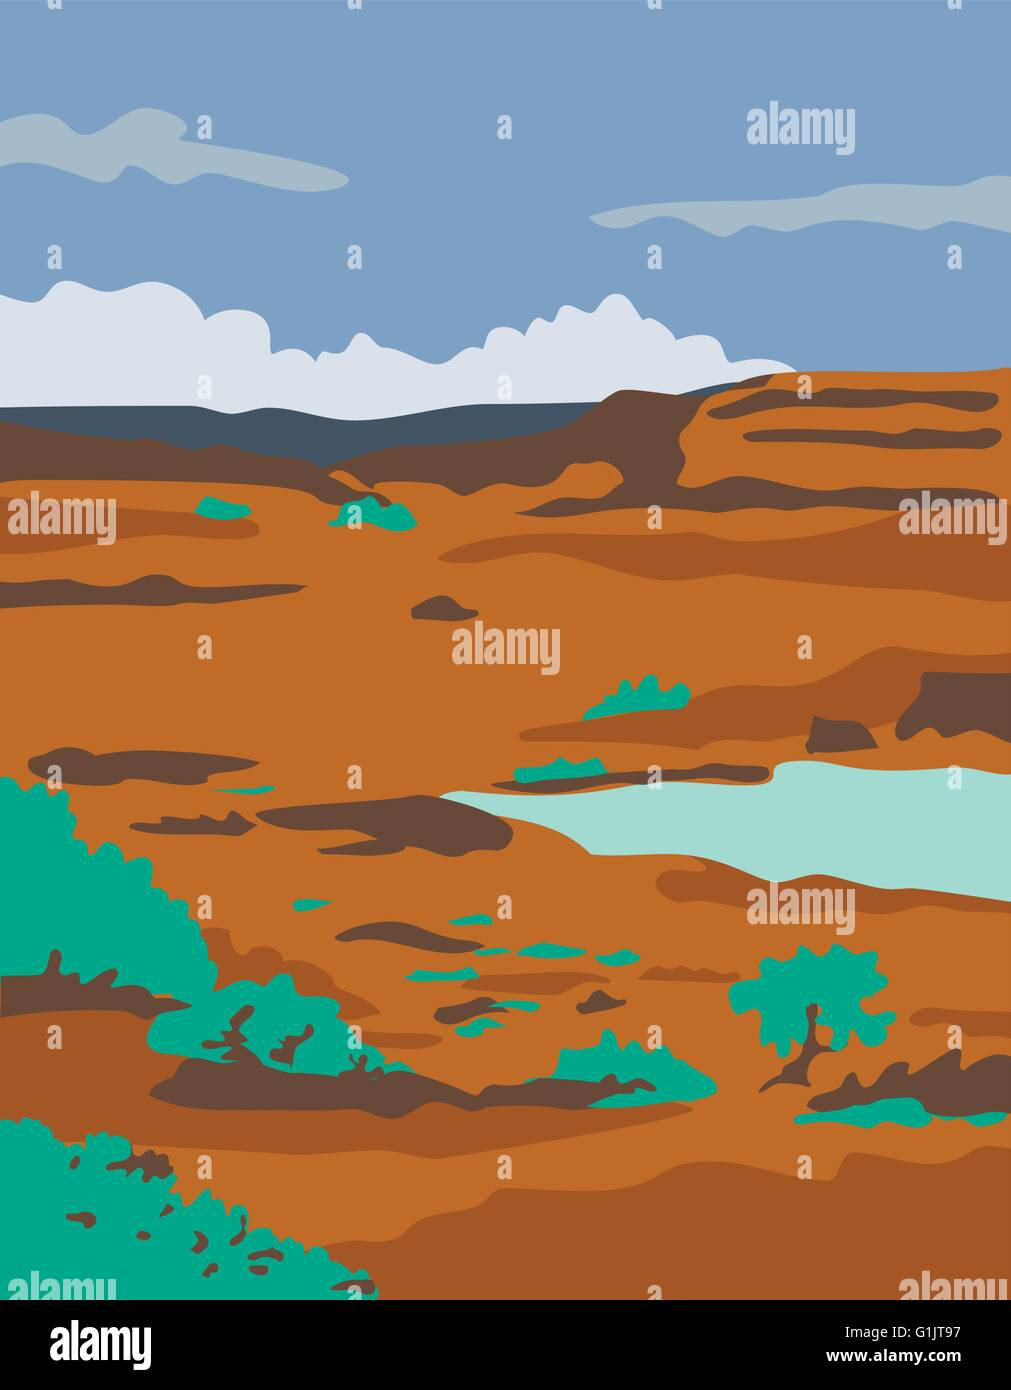 WPA style illustration of a columbian basin desert or arid steppe with water basin lake scenery set inside rectangle - Stock Vector